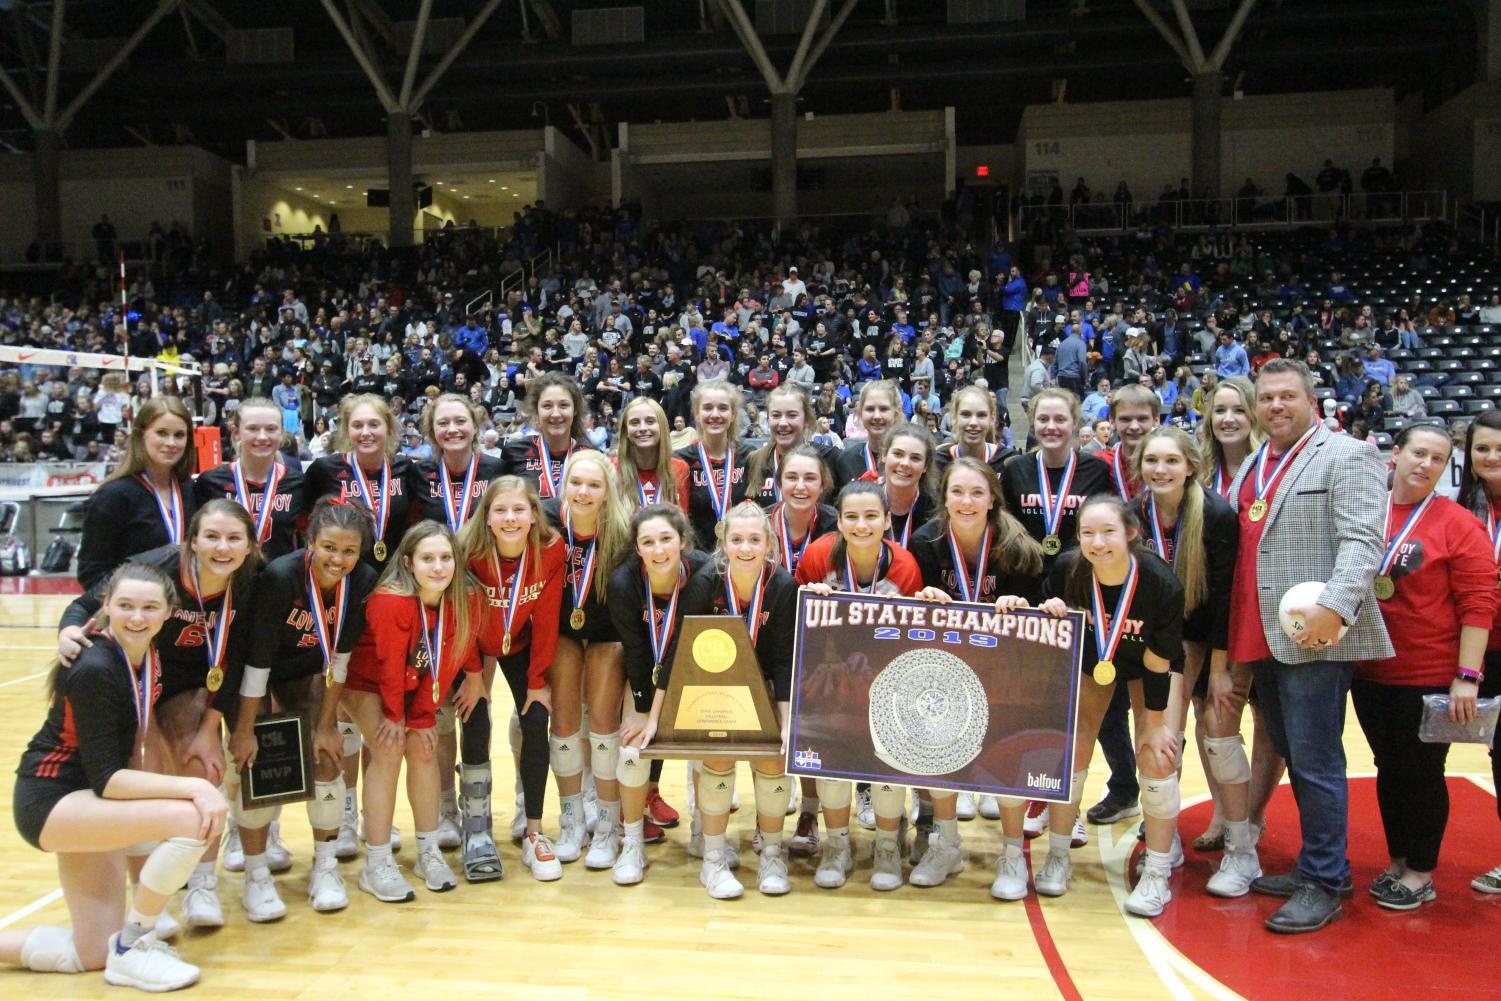 The volleyball team won their 7th UIL state championship Nov. 23. Their win marked the first state championship since their 2014 season.